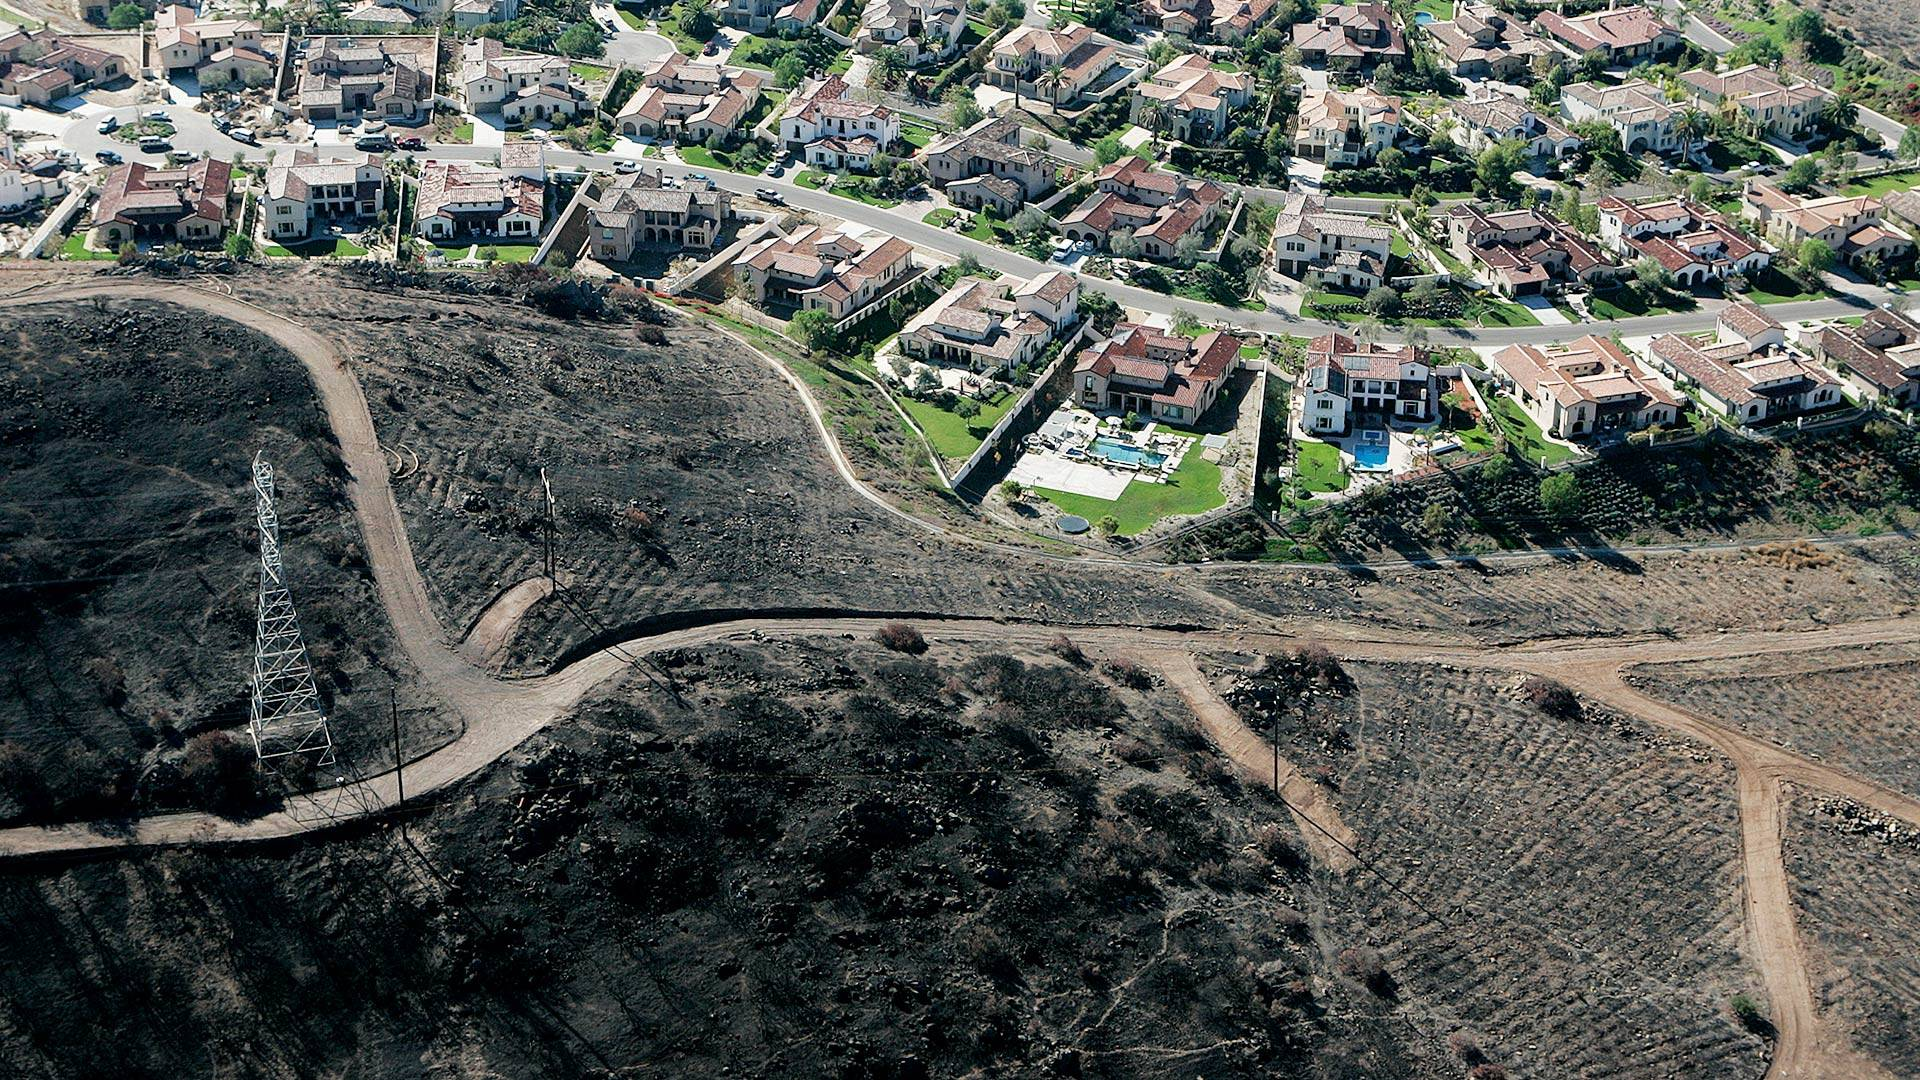 The 2007 Witch Fire burned right up to The Crosby neighborhood at Rancho Santa Fe, but not a single house was ignited. Don Barletti/Los Angeles Times via Getty Images